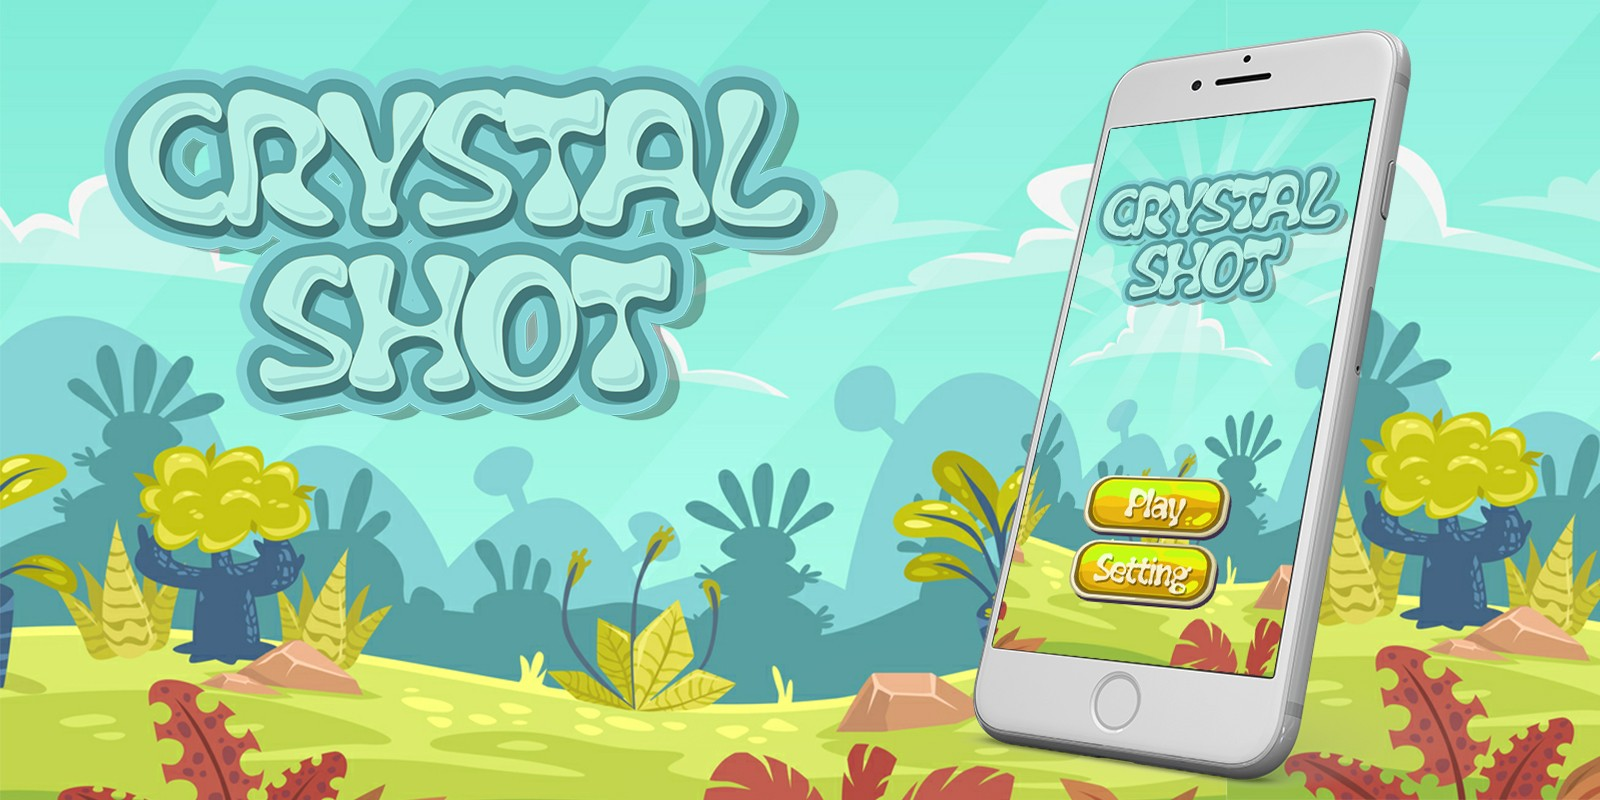 Crystal Shot - Buildbox Game Template